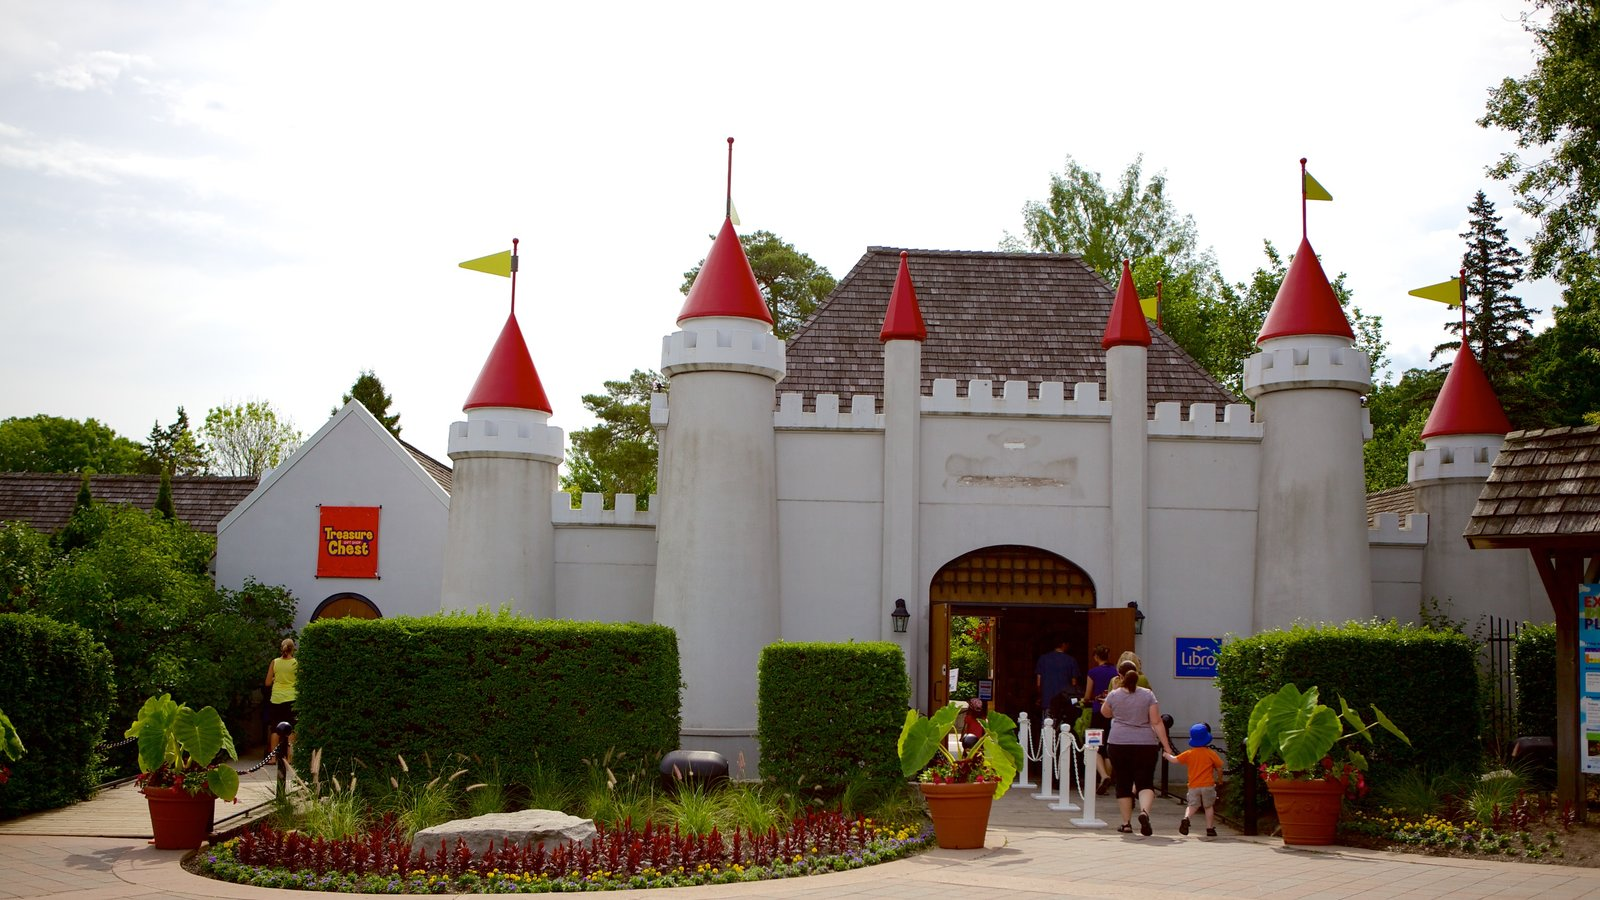 Storybook Gardens which includes chateau or palace